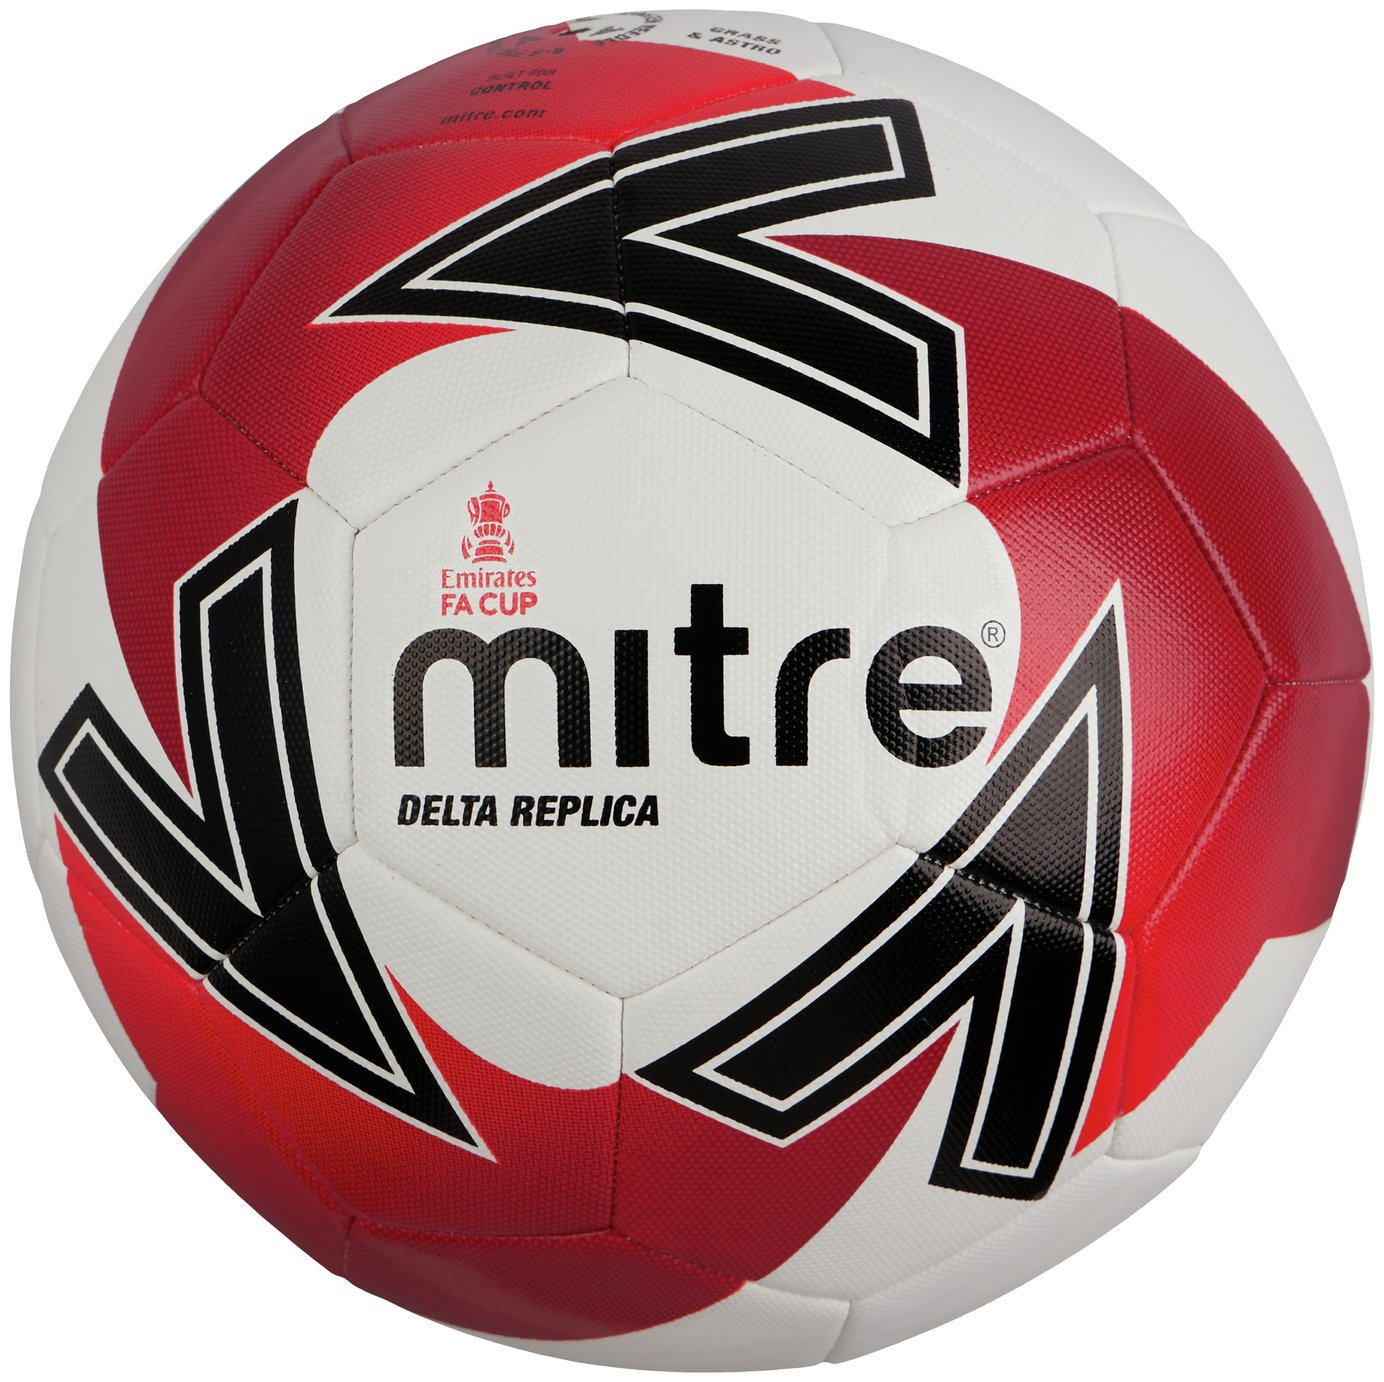 Mitre Official FA Cup Size 5 Football